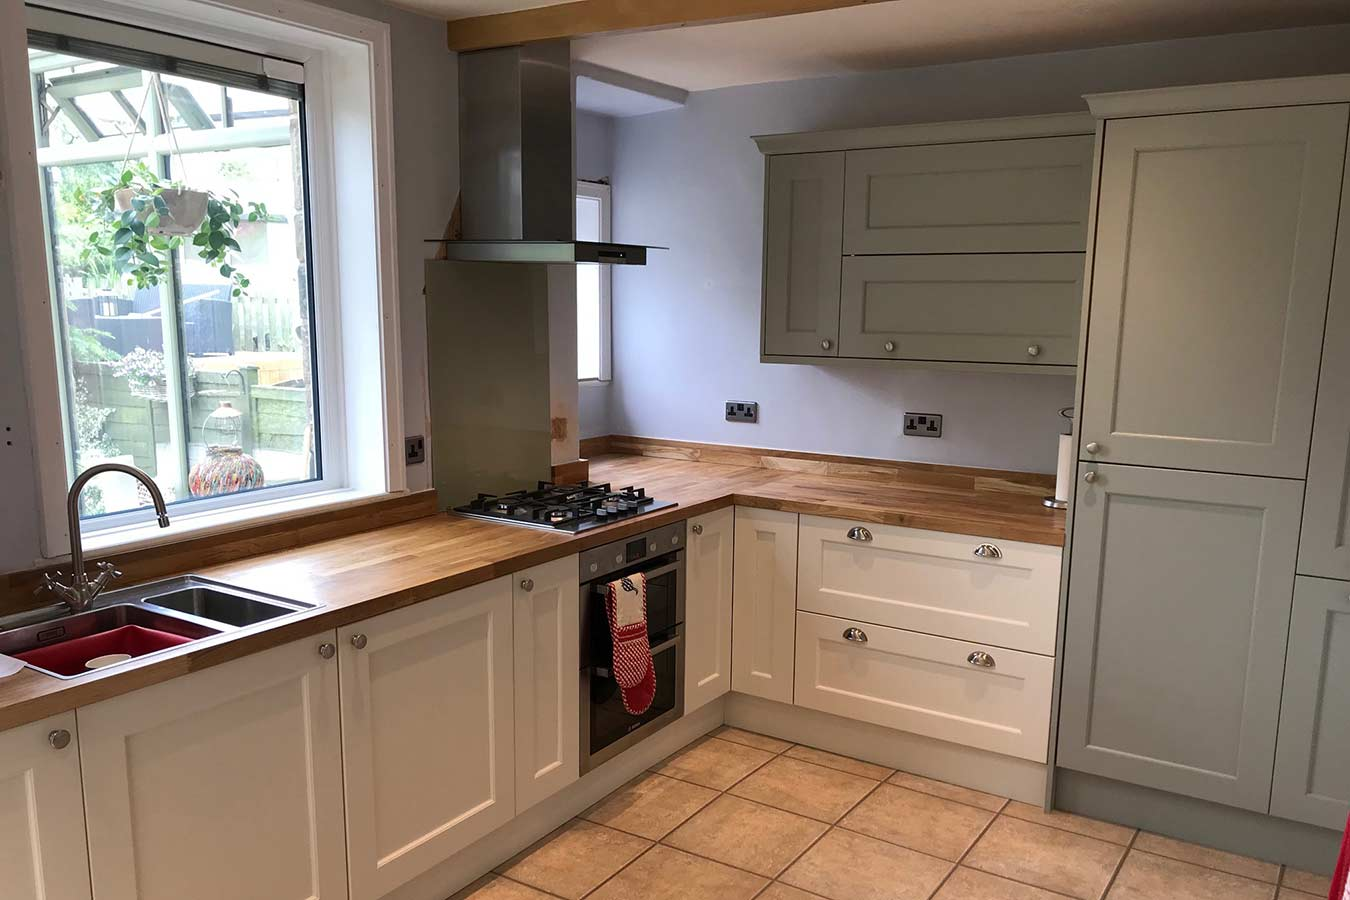 Masterclass Kitchen Shaker Style in Ivory and Sage Green